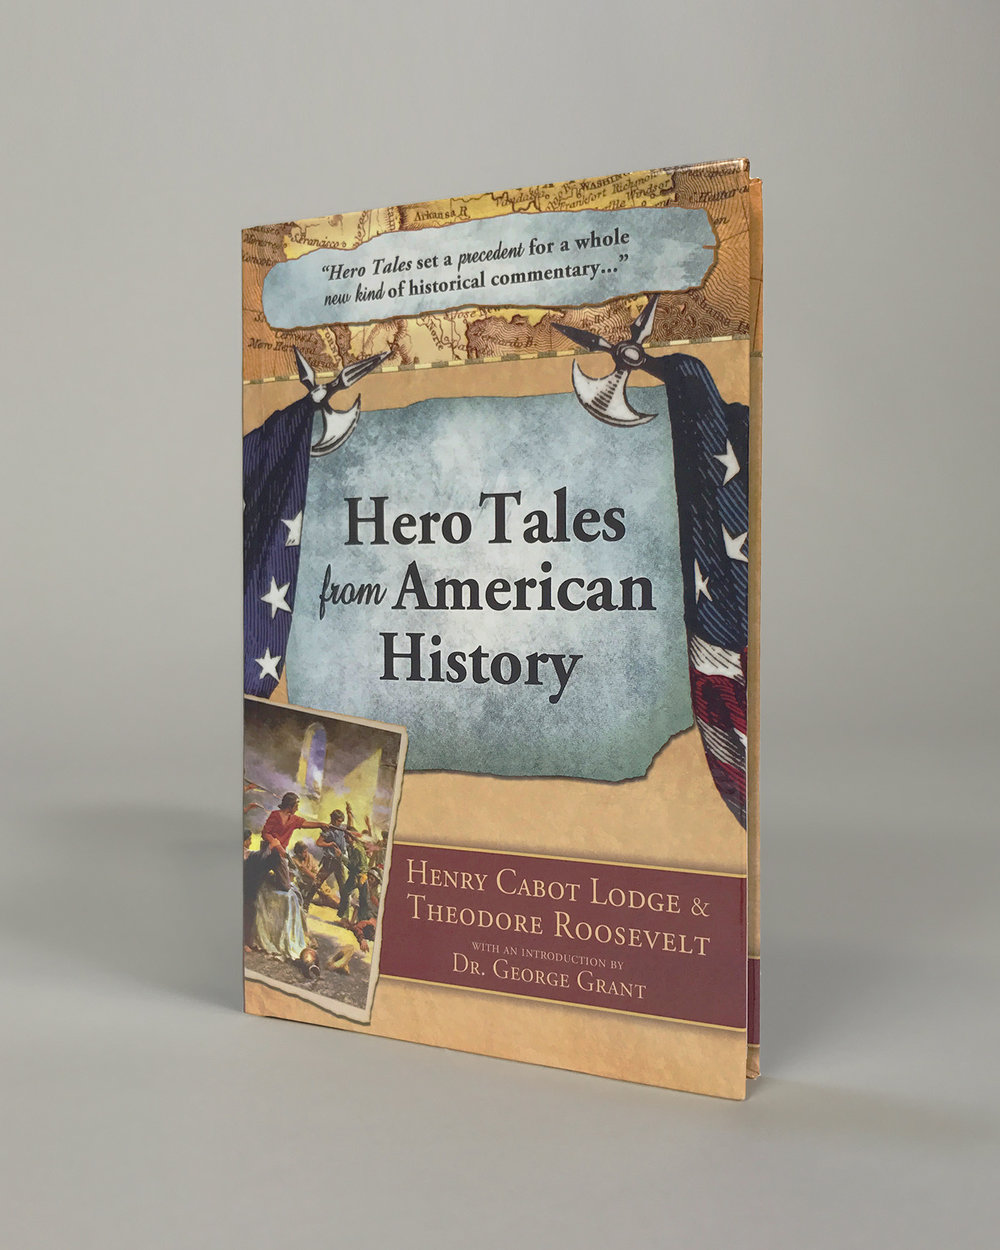 'Hero Tales' front cover